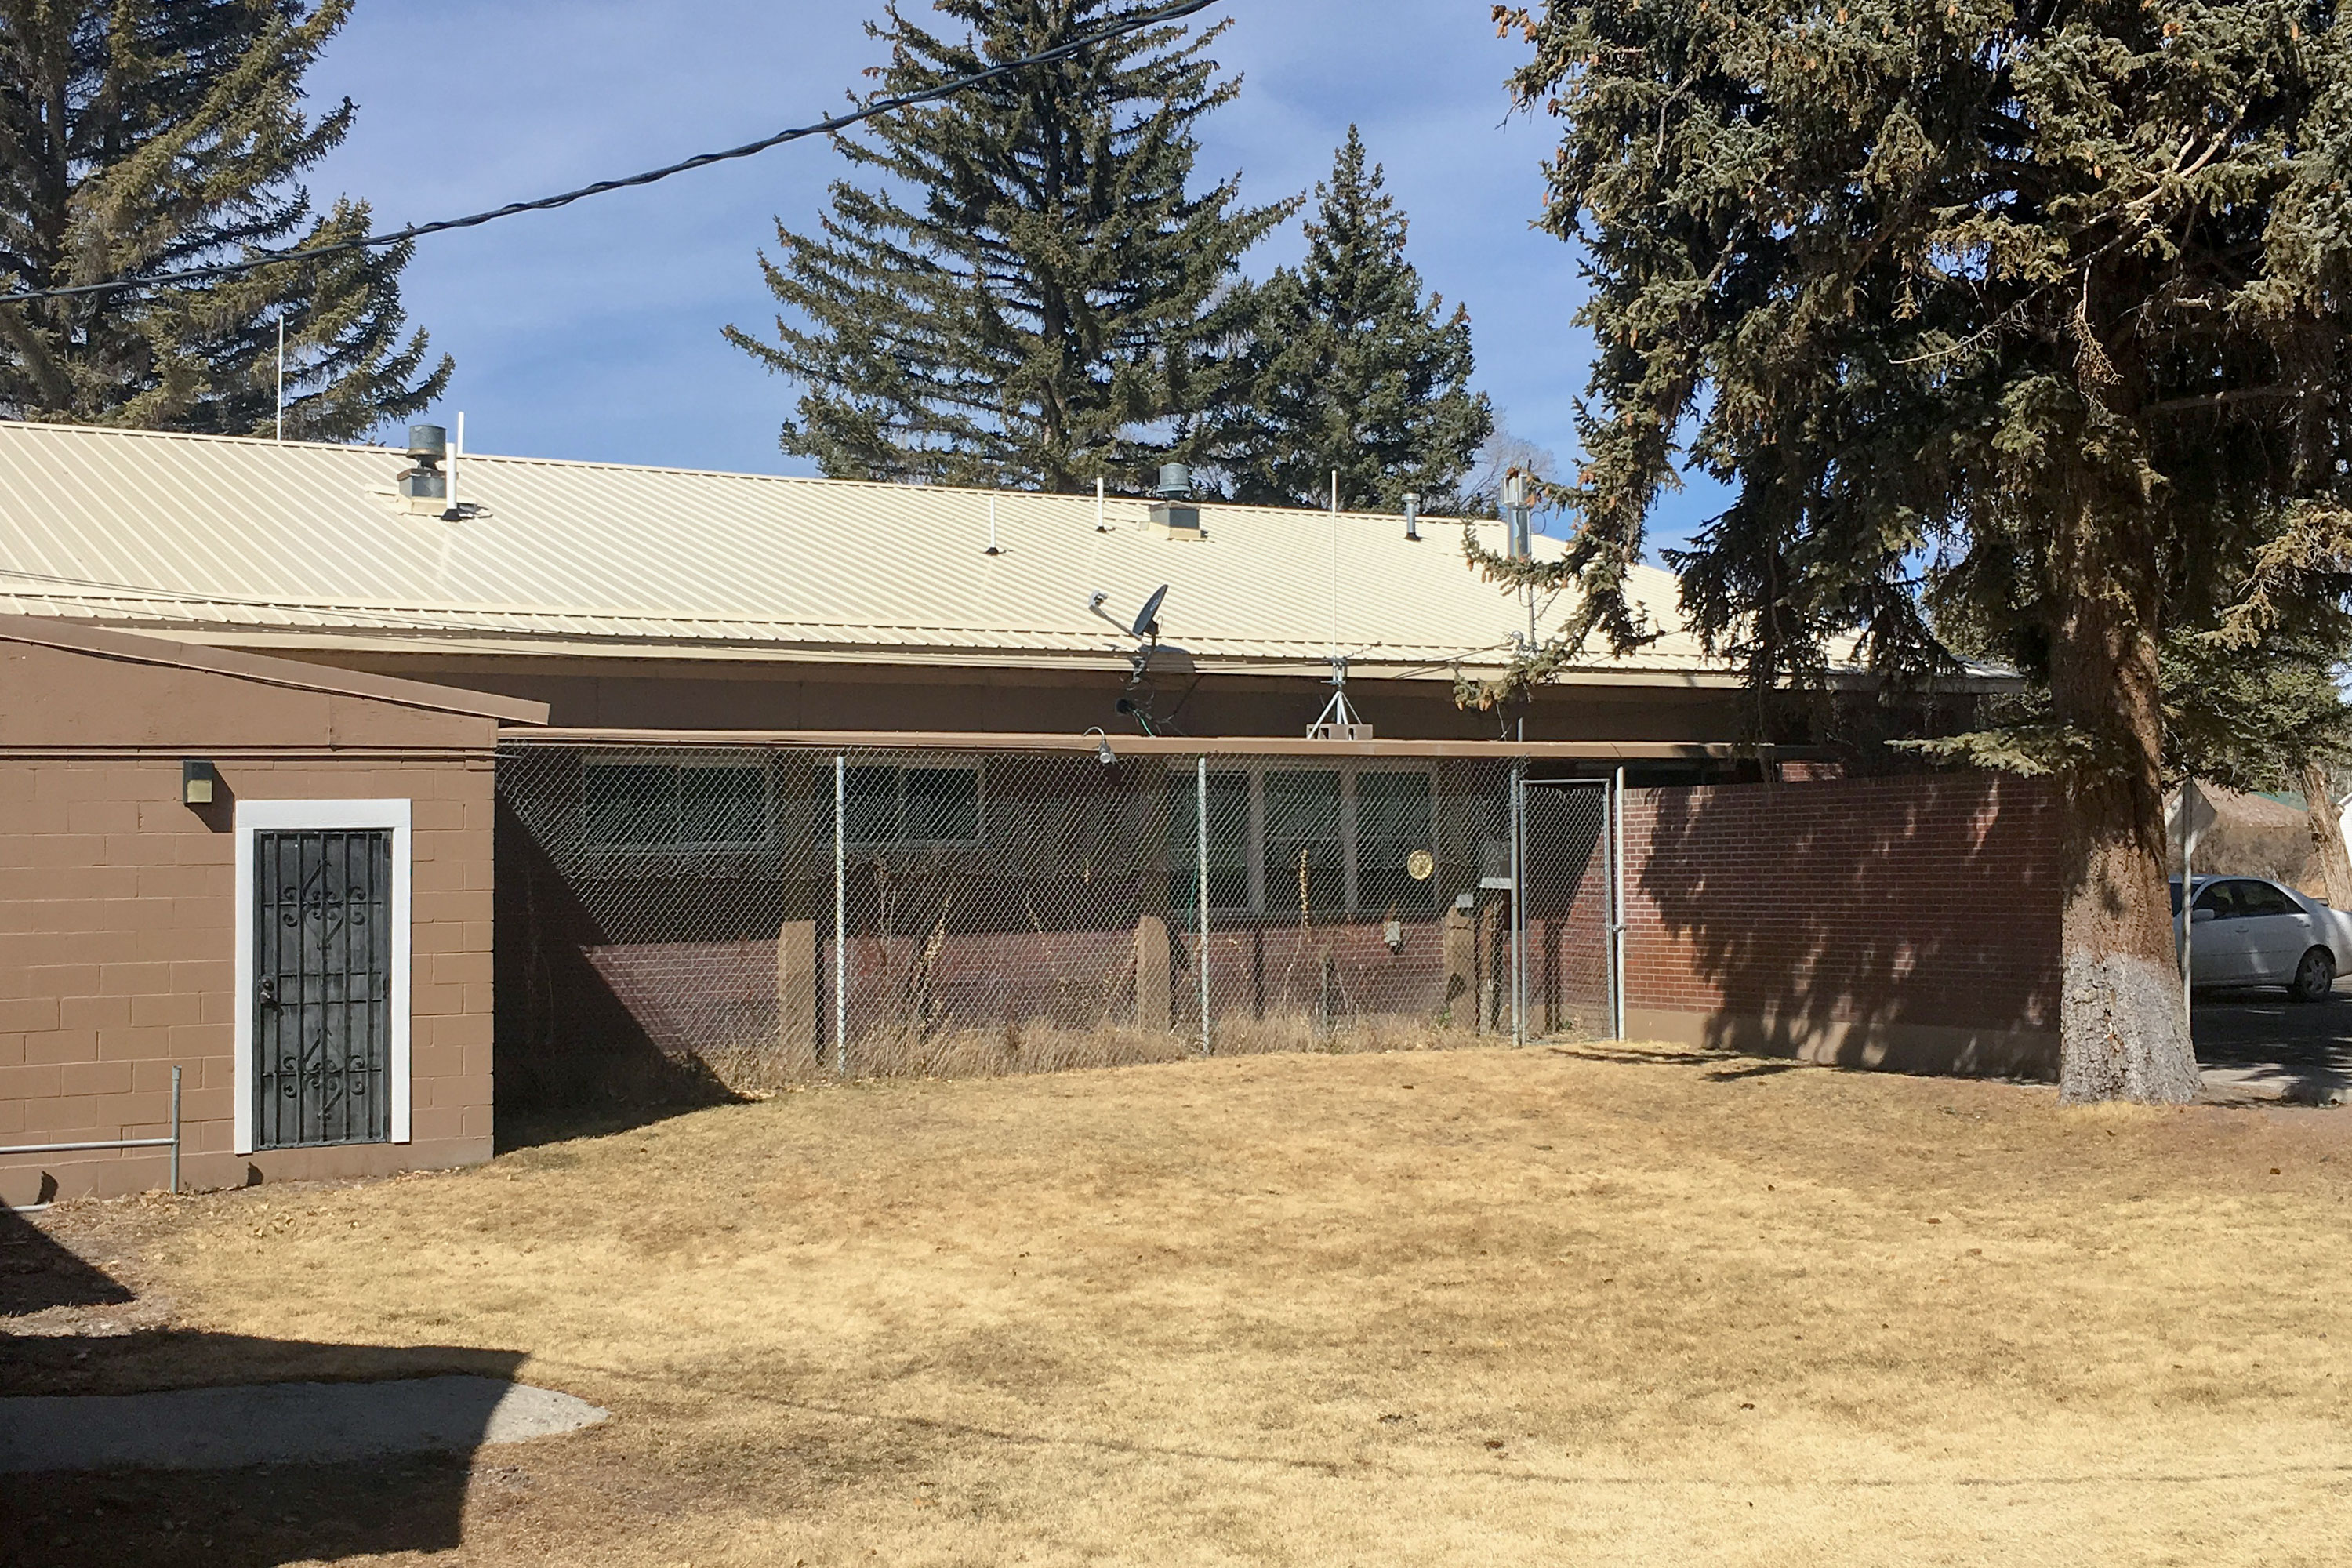 Photo: Saguache Jail 2 | County Jail Bldg - Courtesy